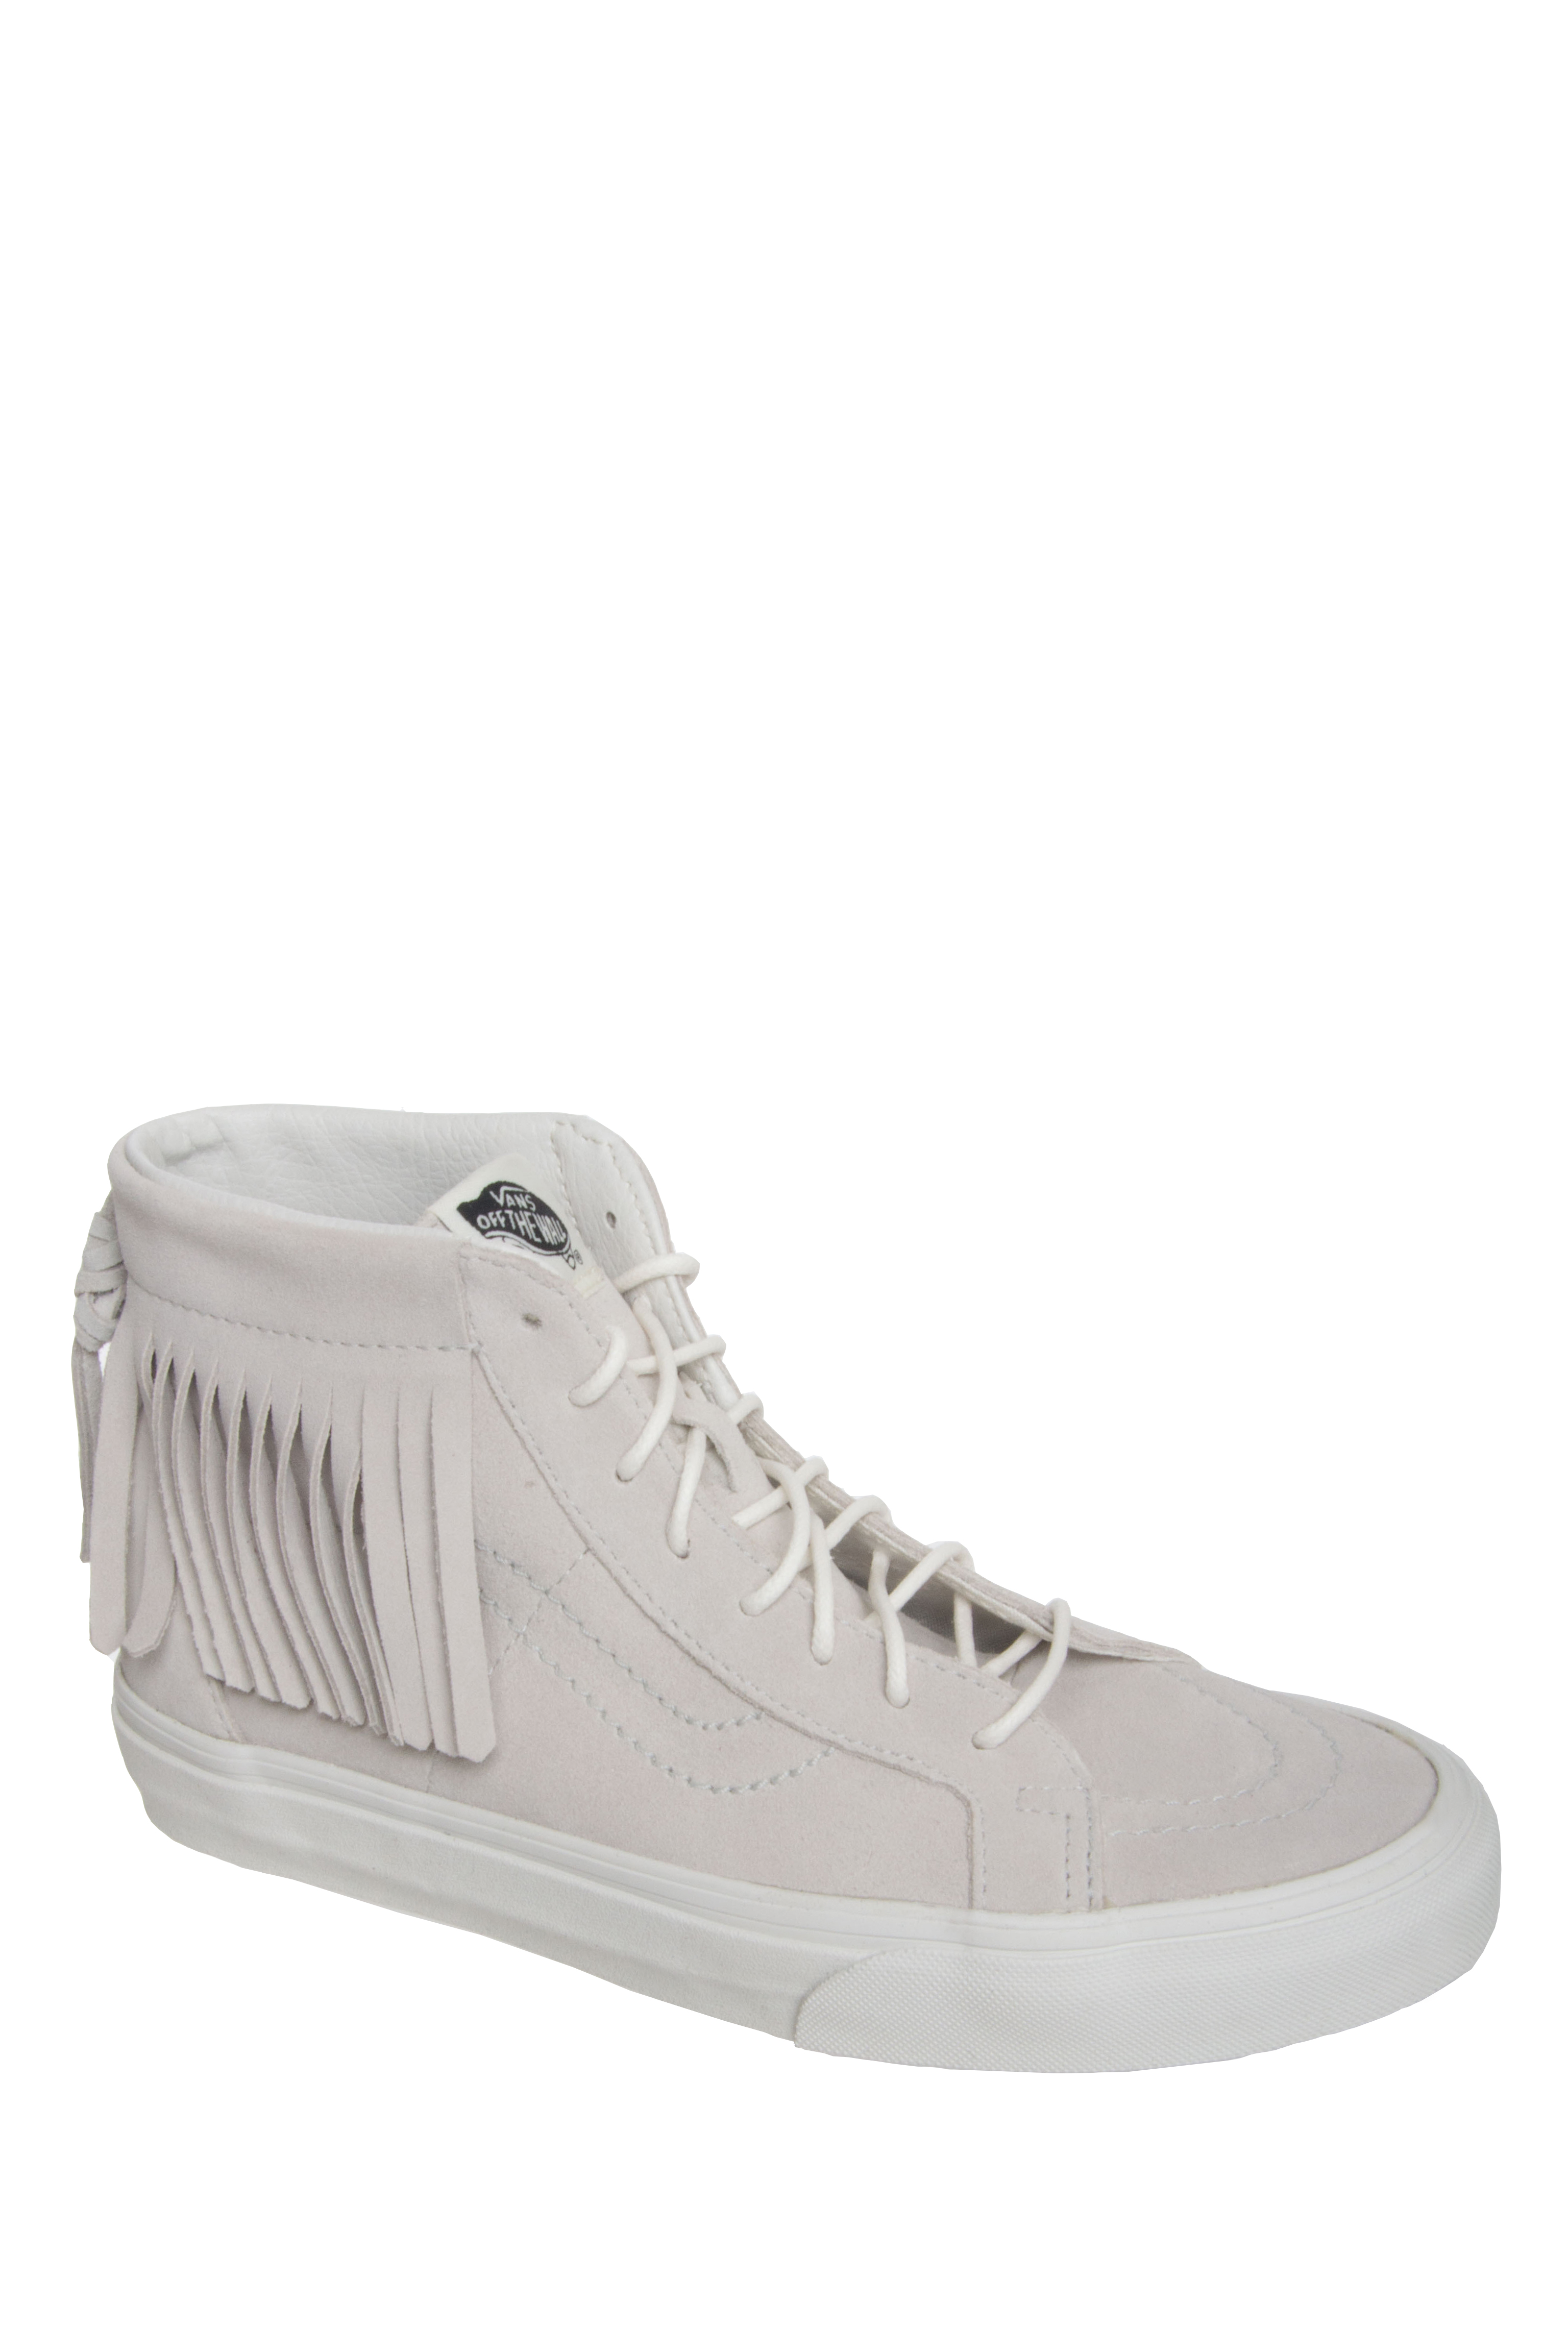 VANS Unisex SK8 Hi Top Moc Suede Sneakers - Winter White